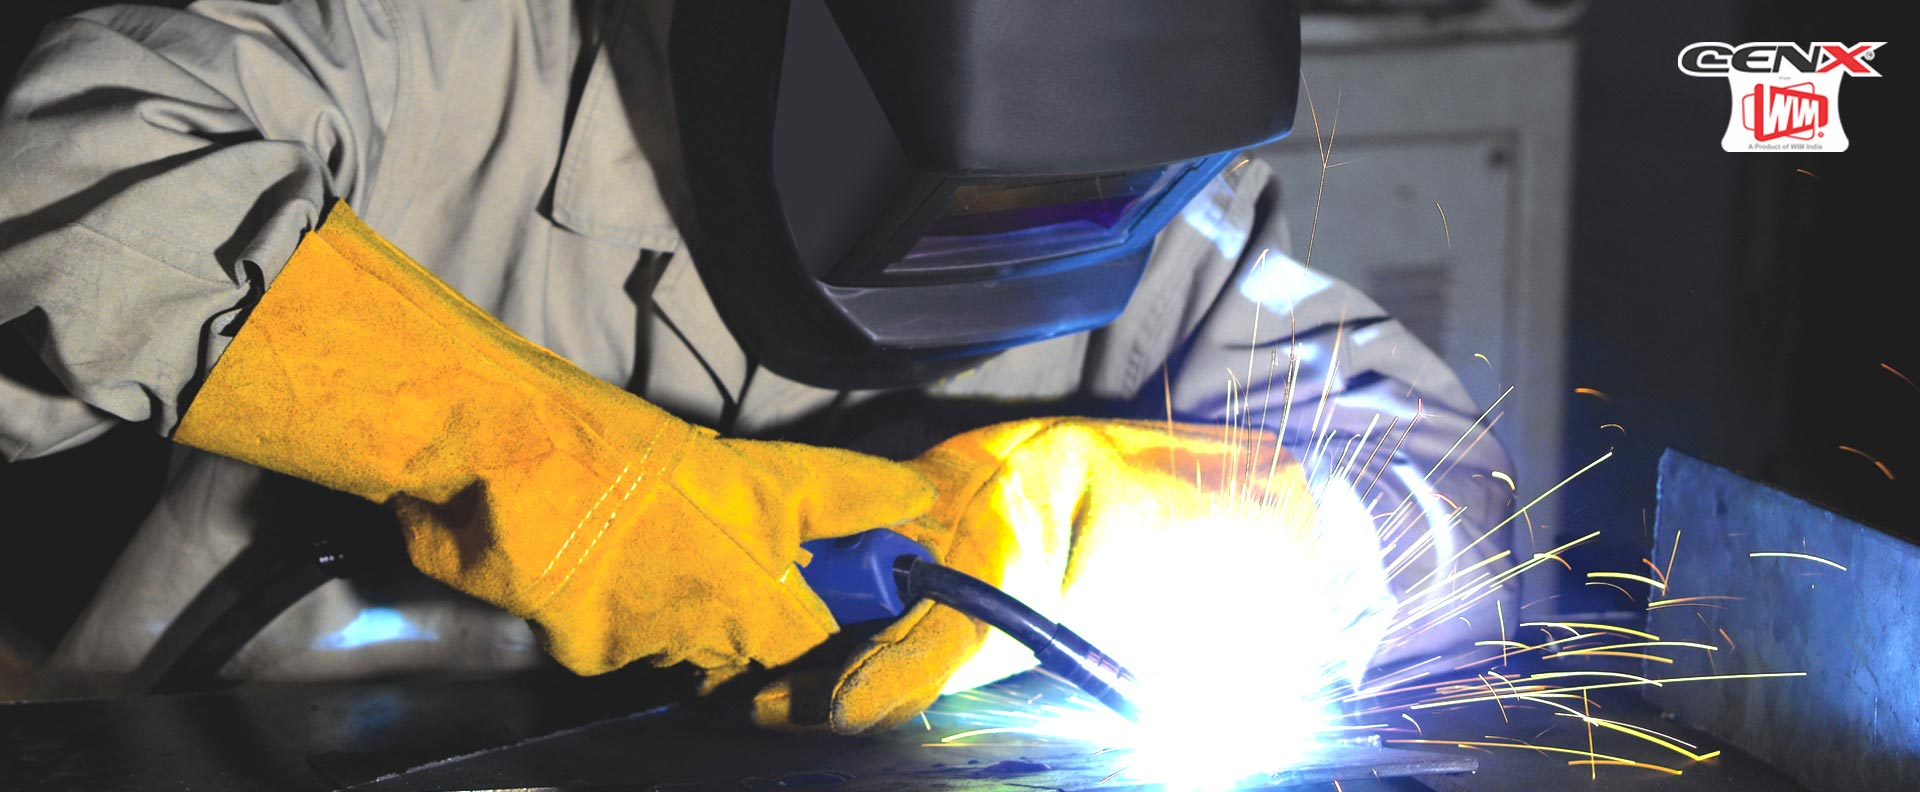 <h2>RELIABLE, ROBUST & POWERFUL</h2></br>WELDING & CUTTING EQUIPMENTS